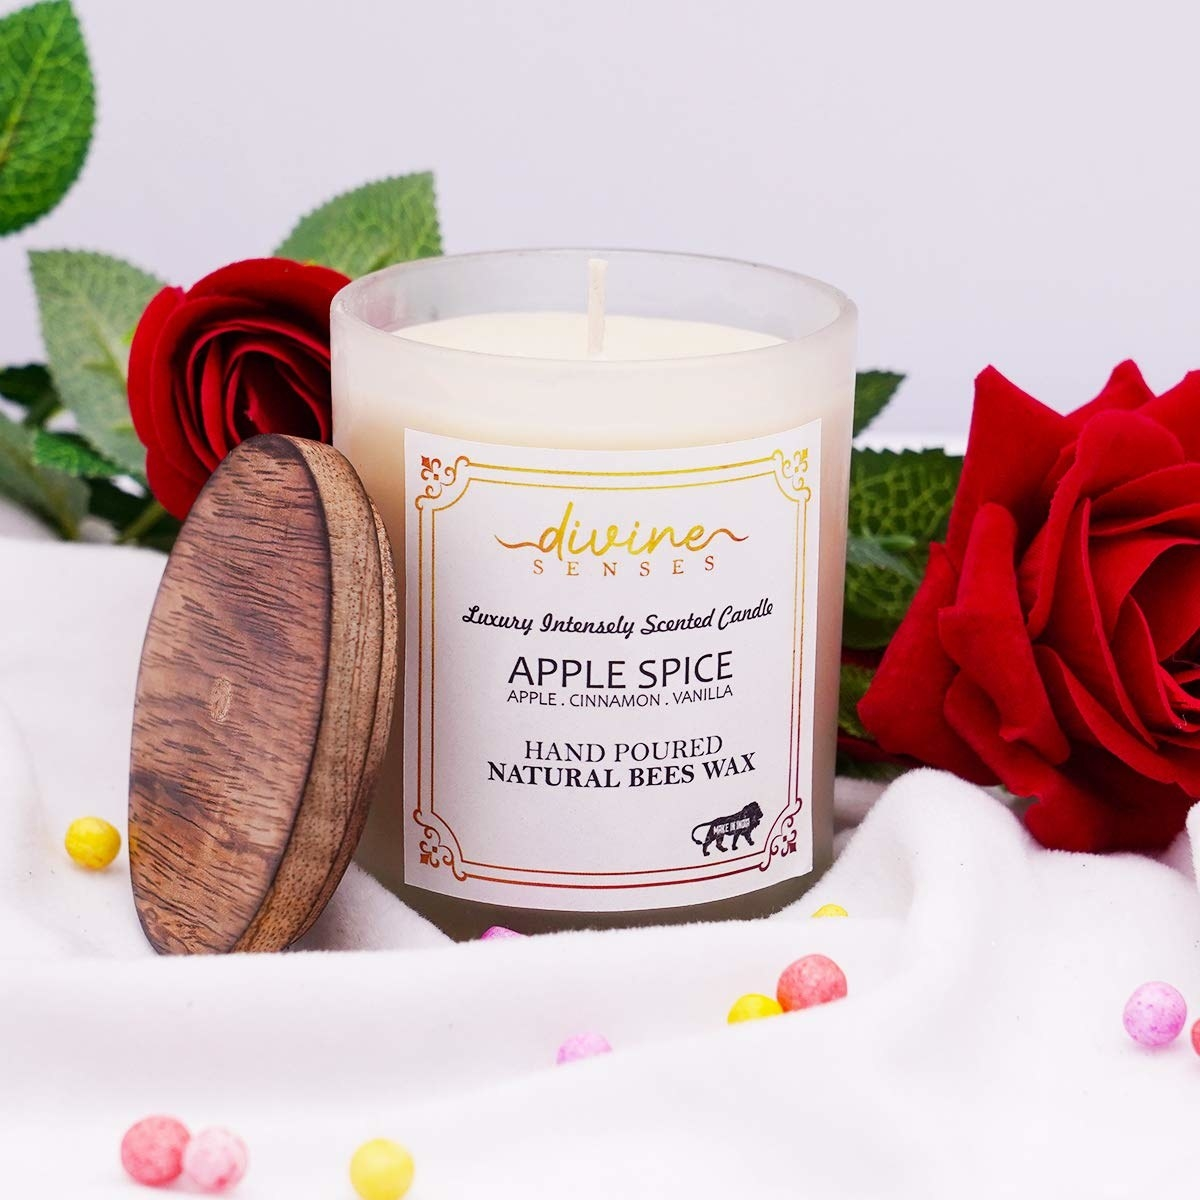 An apple spice scented candles next to roses and some beads